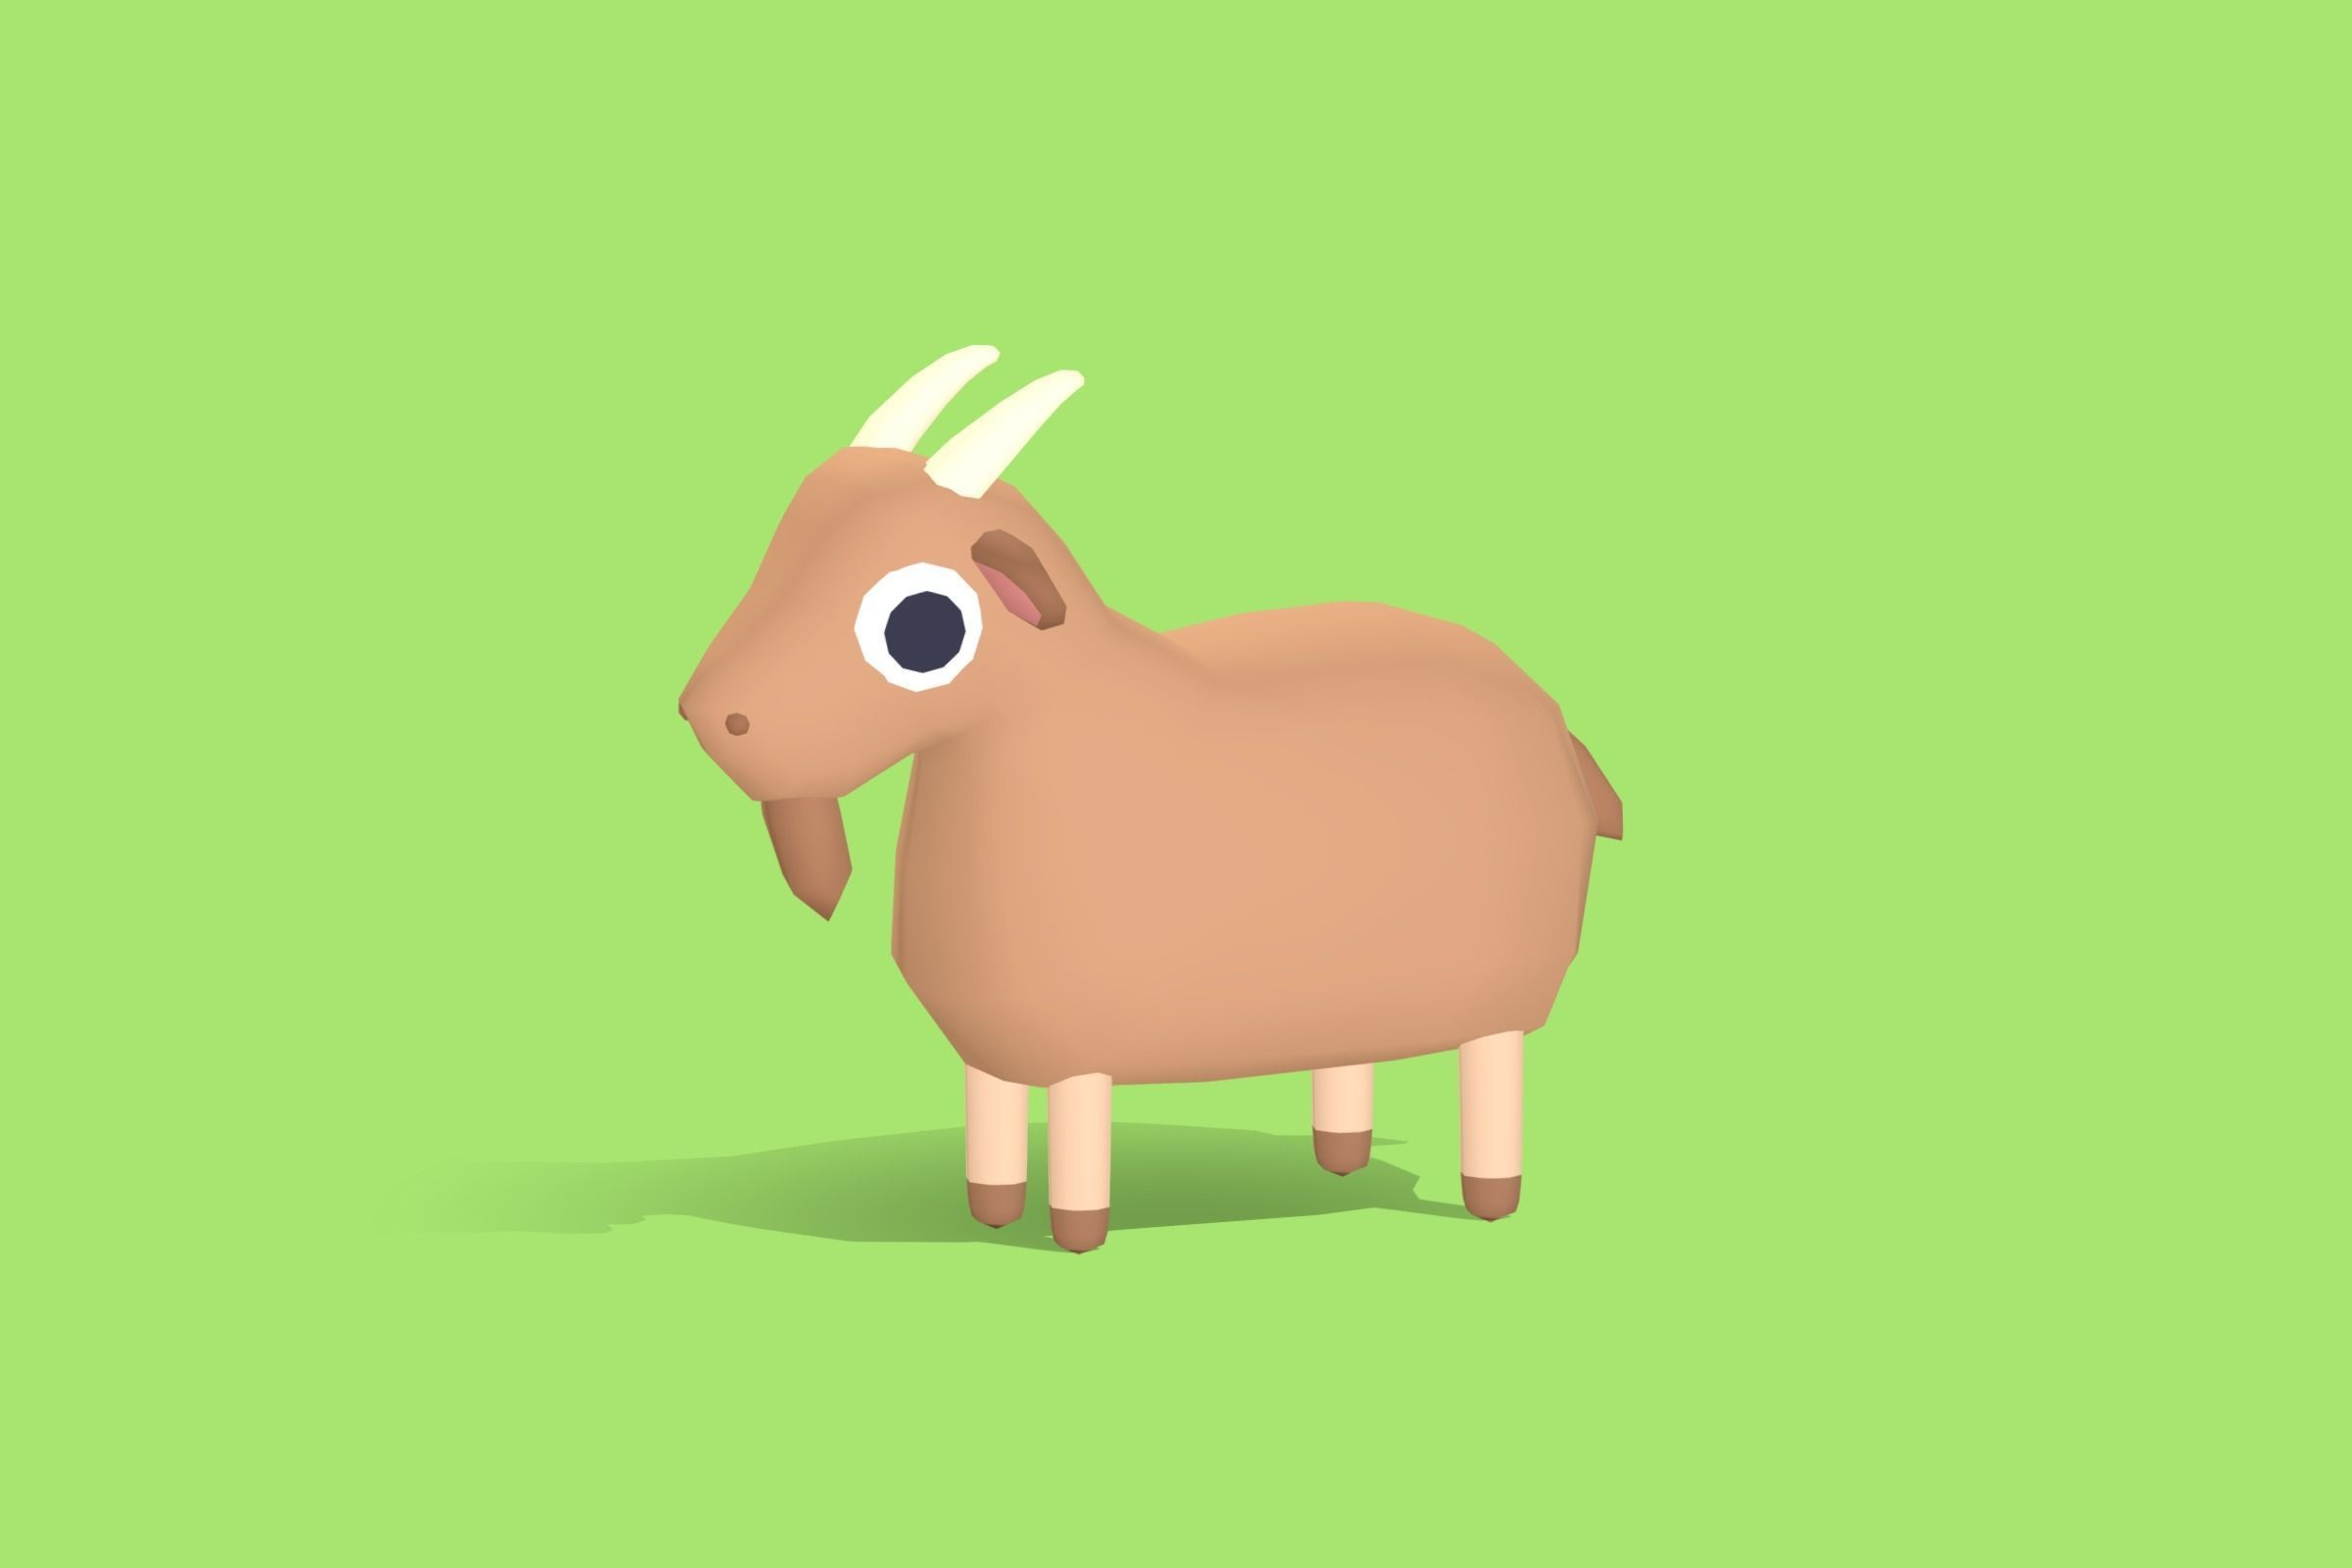 Gunter the Goat - Quirky Series